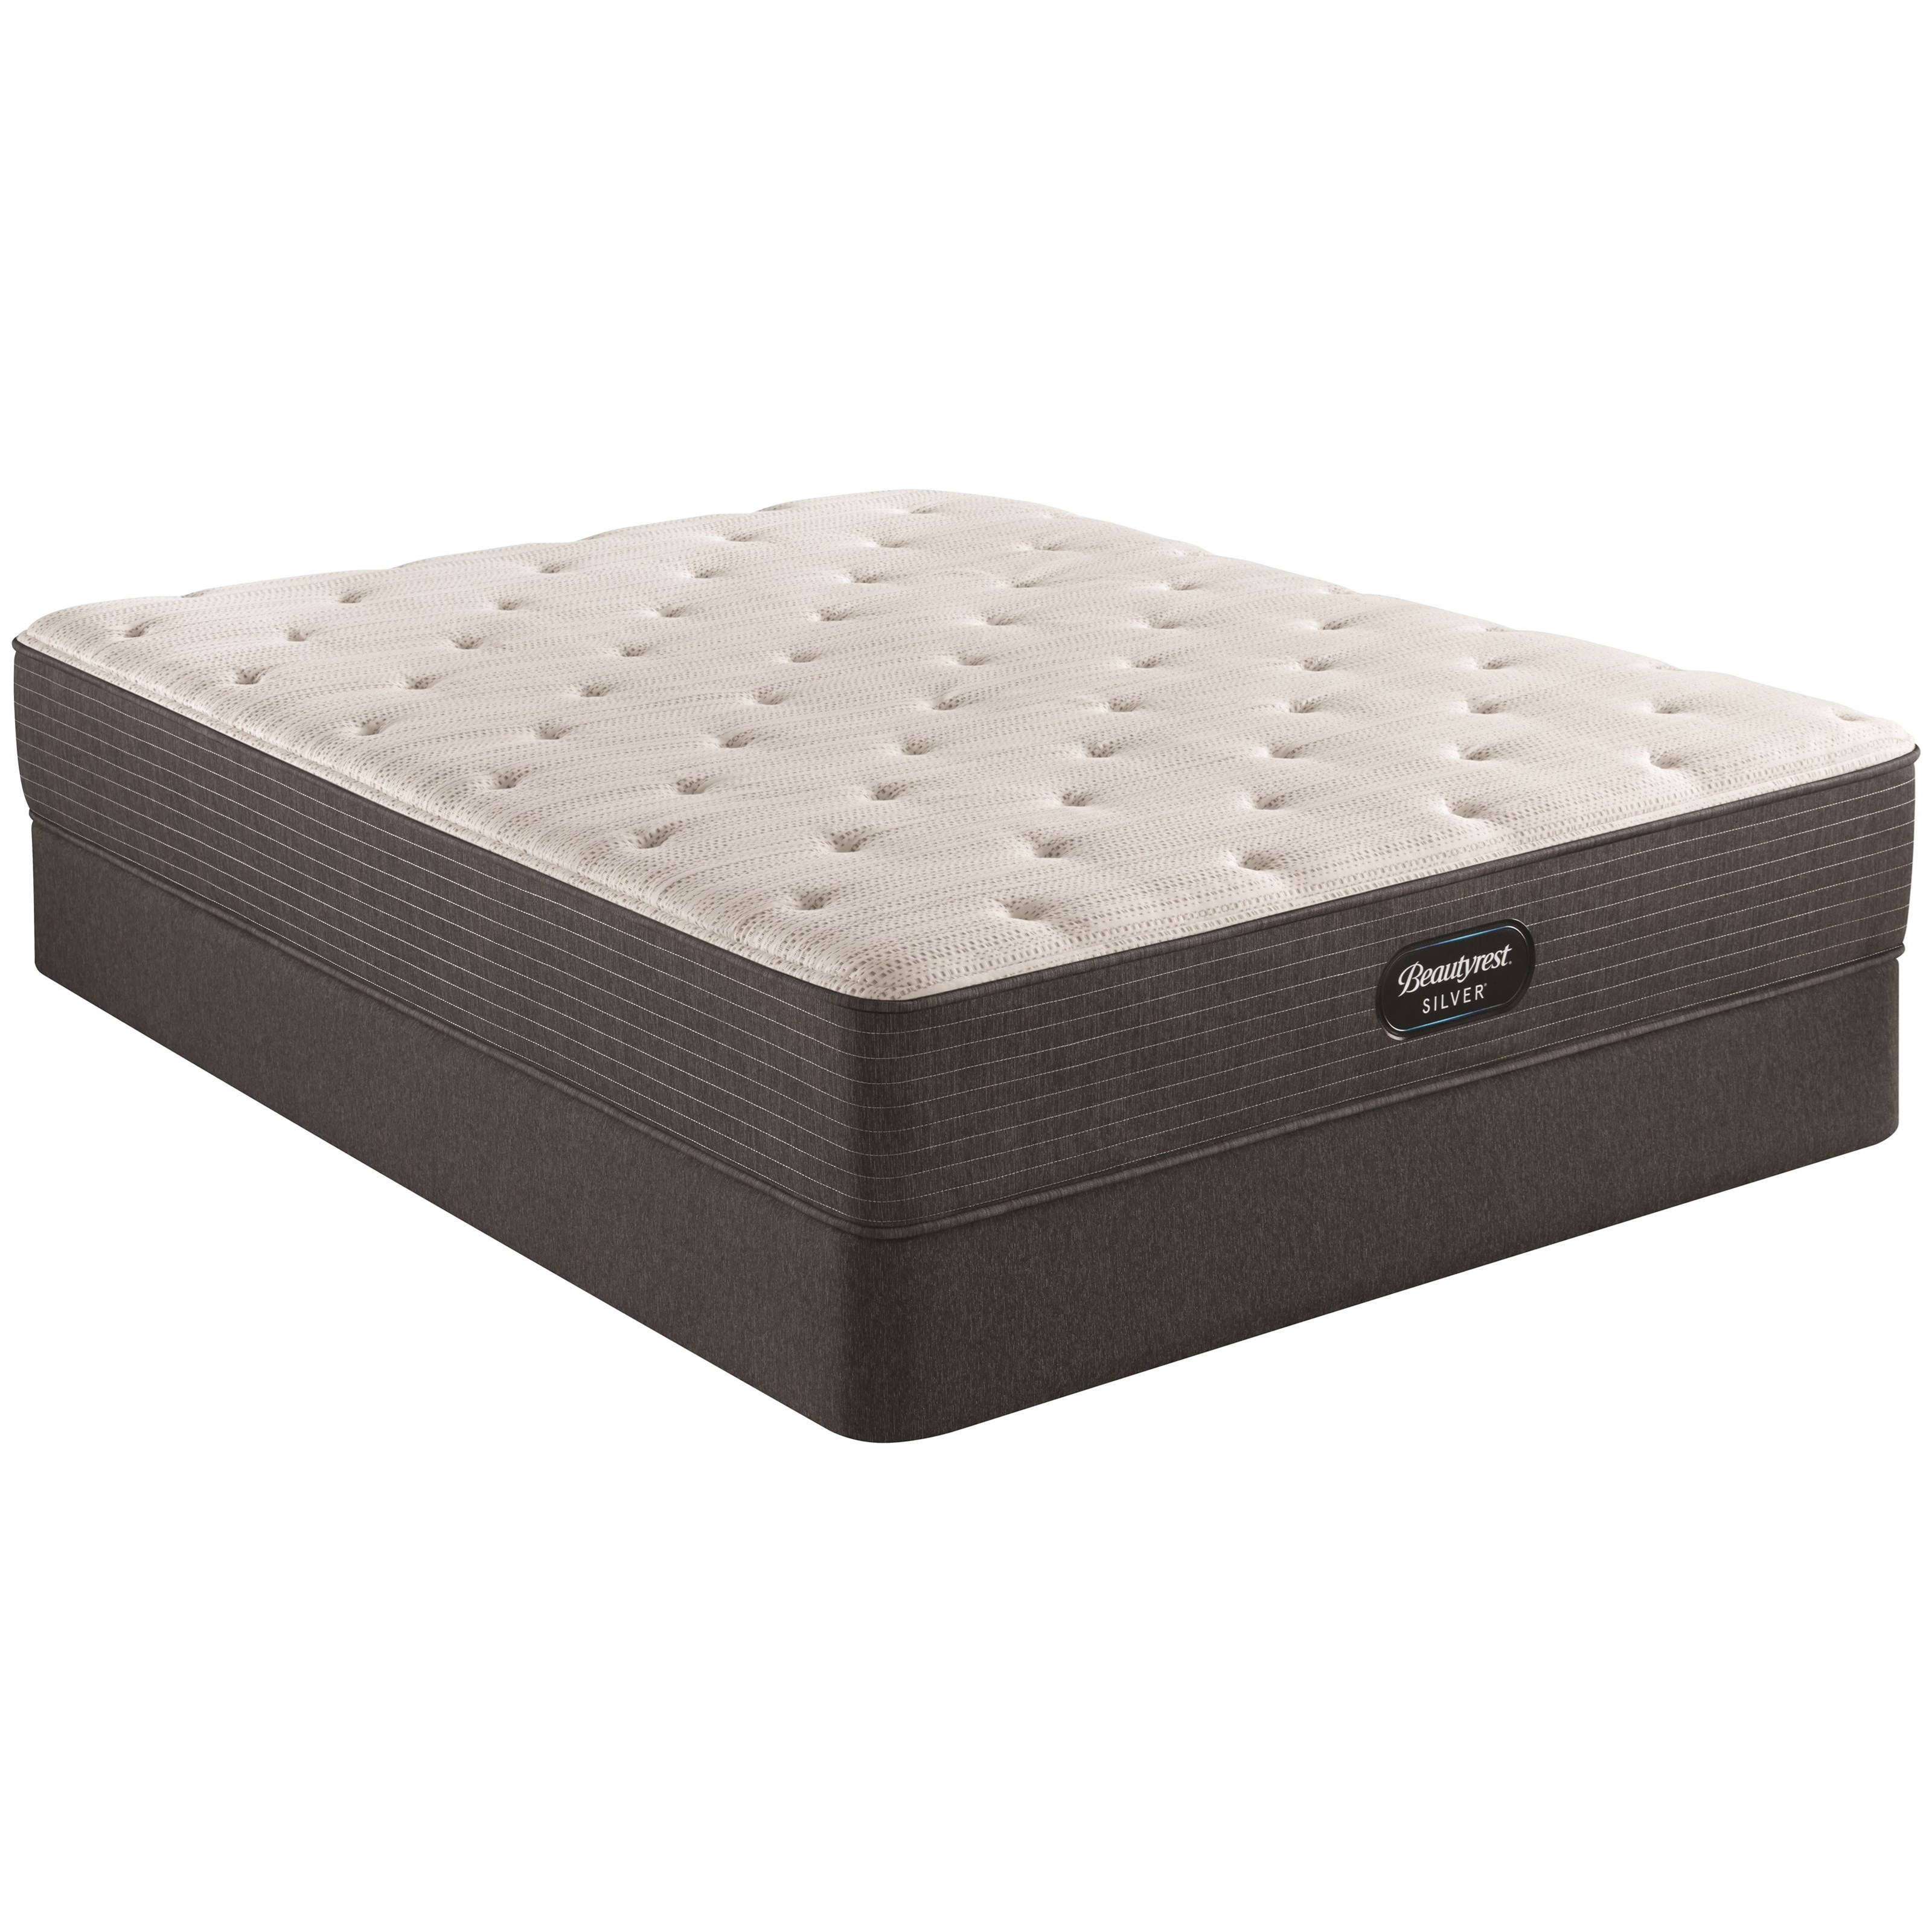 "BRS900 Medium Twin 12"" Pocketed Coil Mattress Set by Beautyrest at Darvin Furniture"